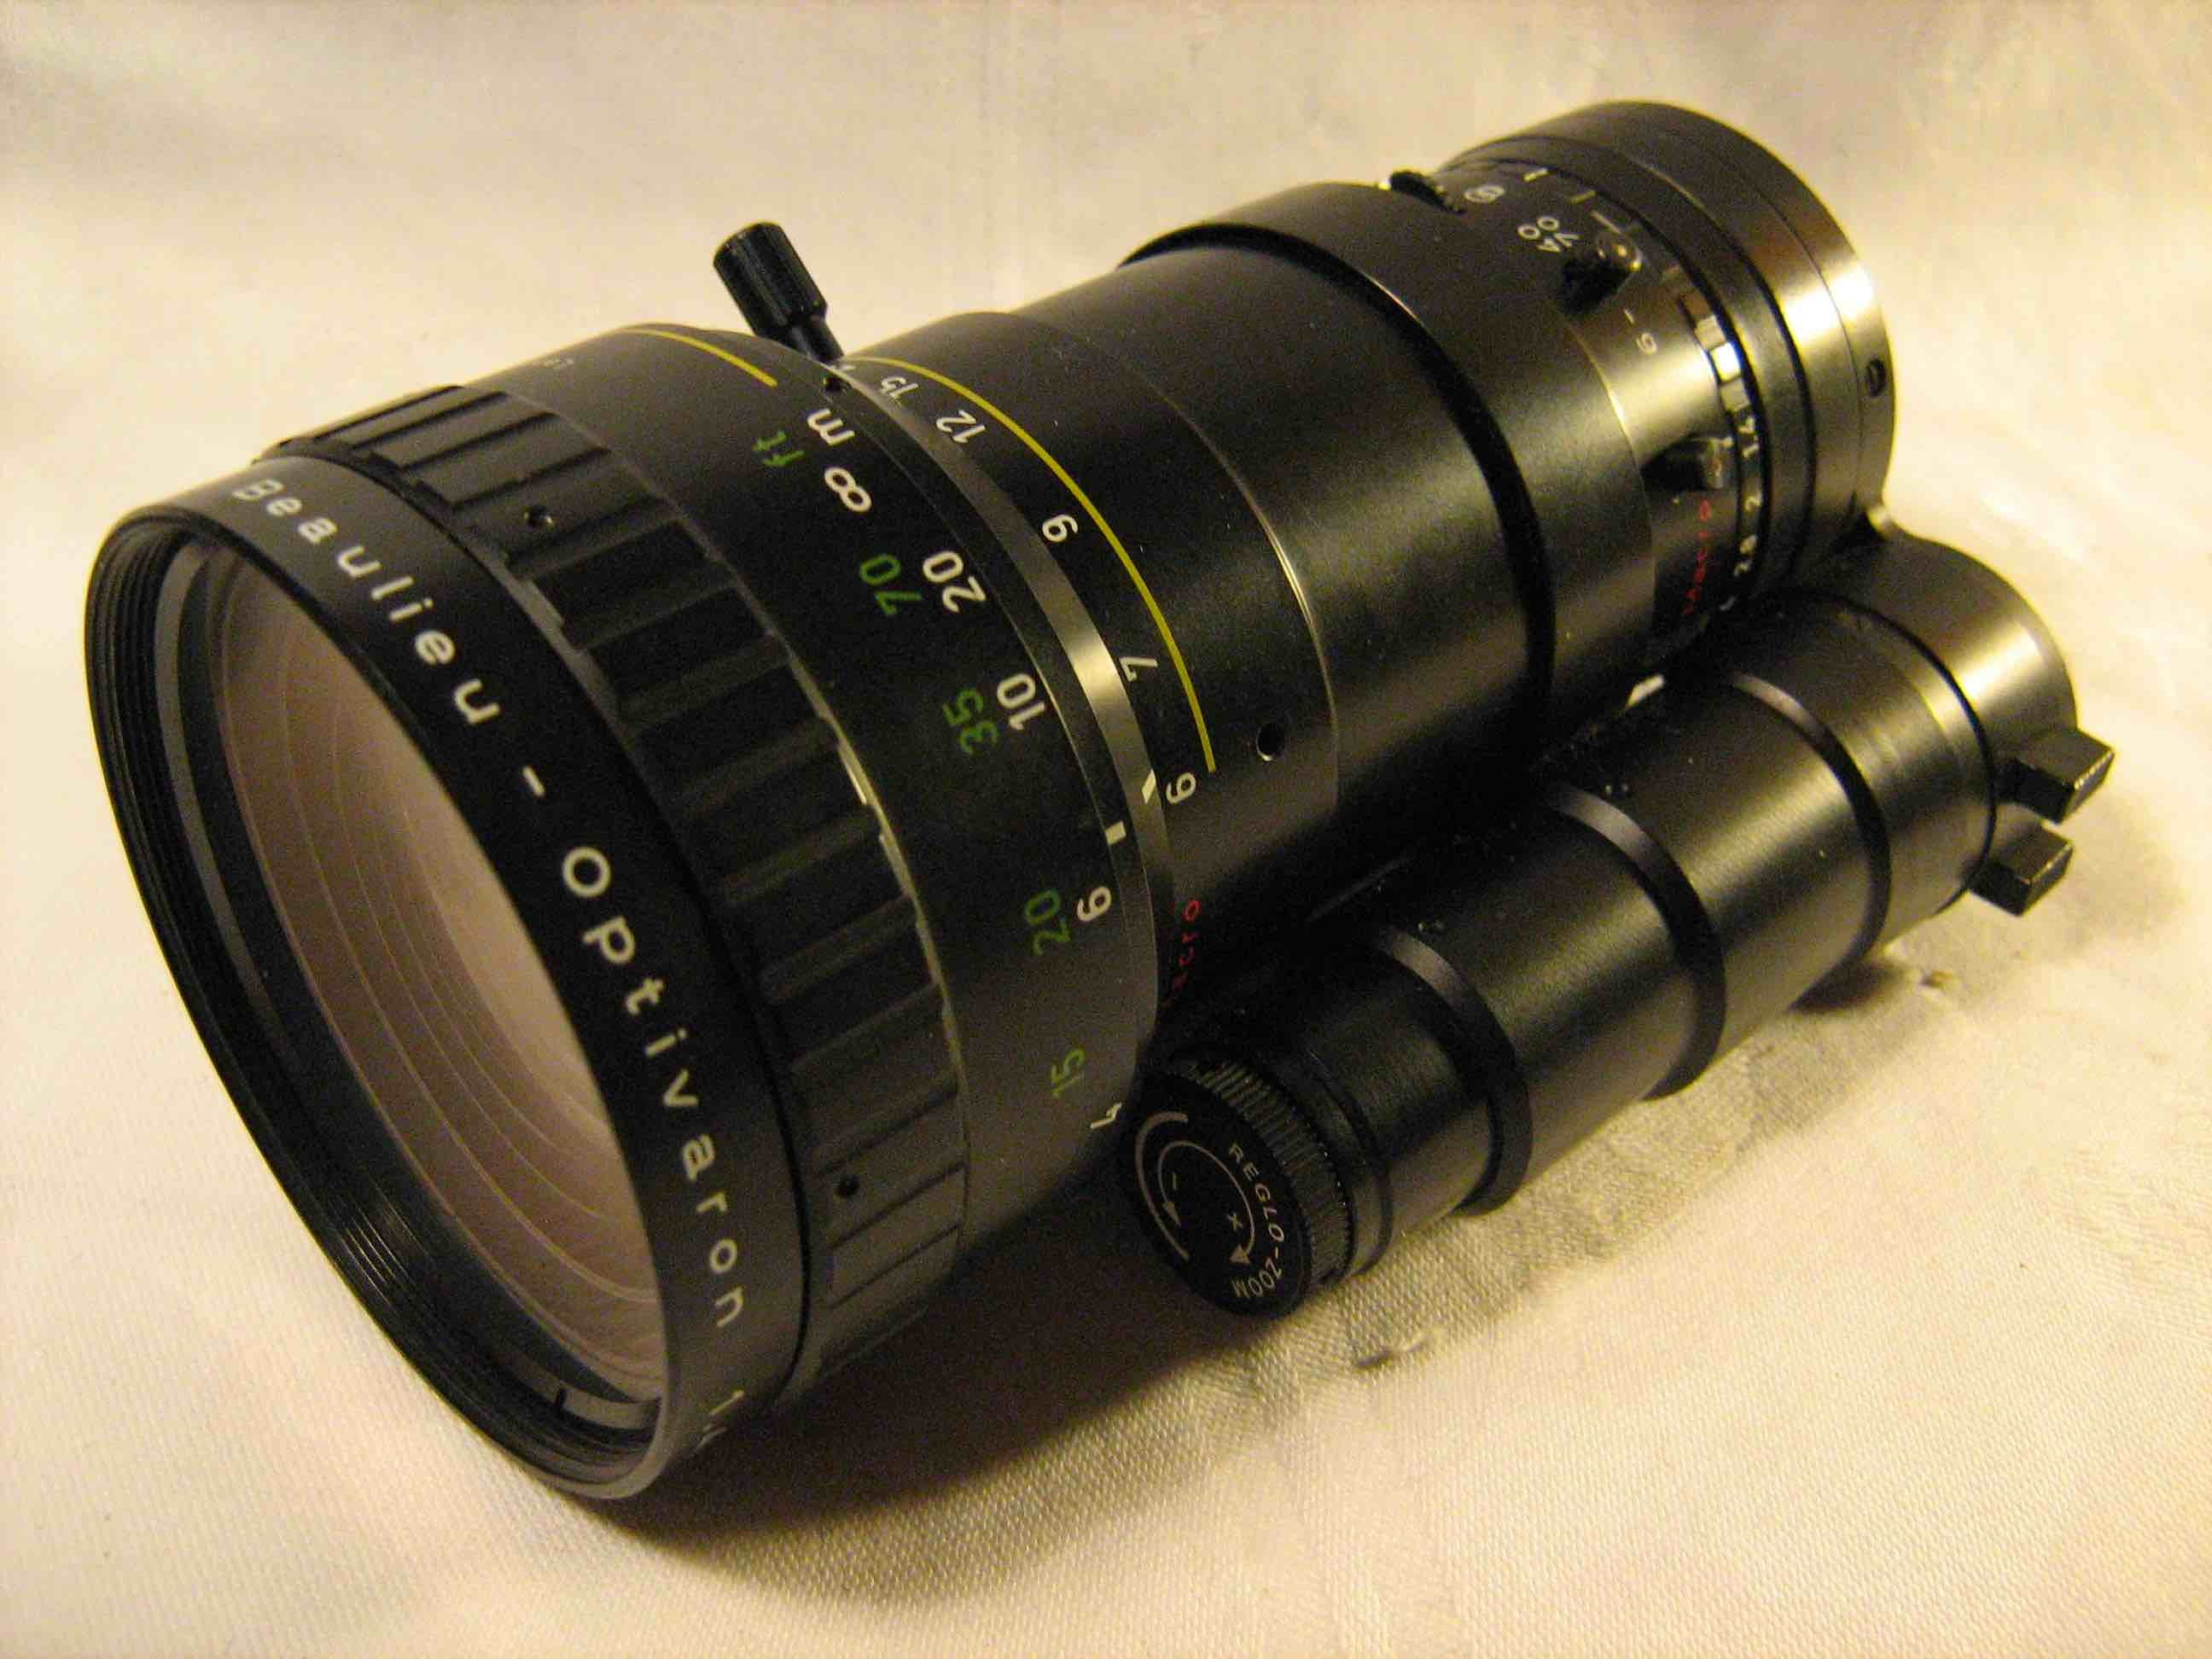 Schneider f1.4, 6-70 mm lens with integrated daylight filter